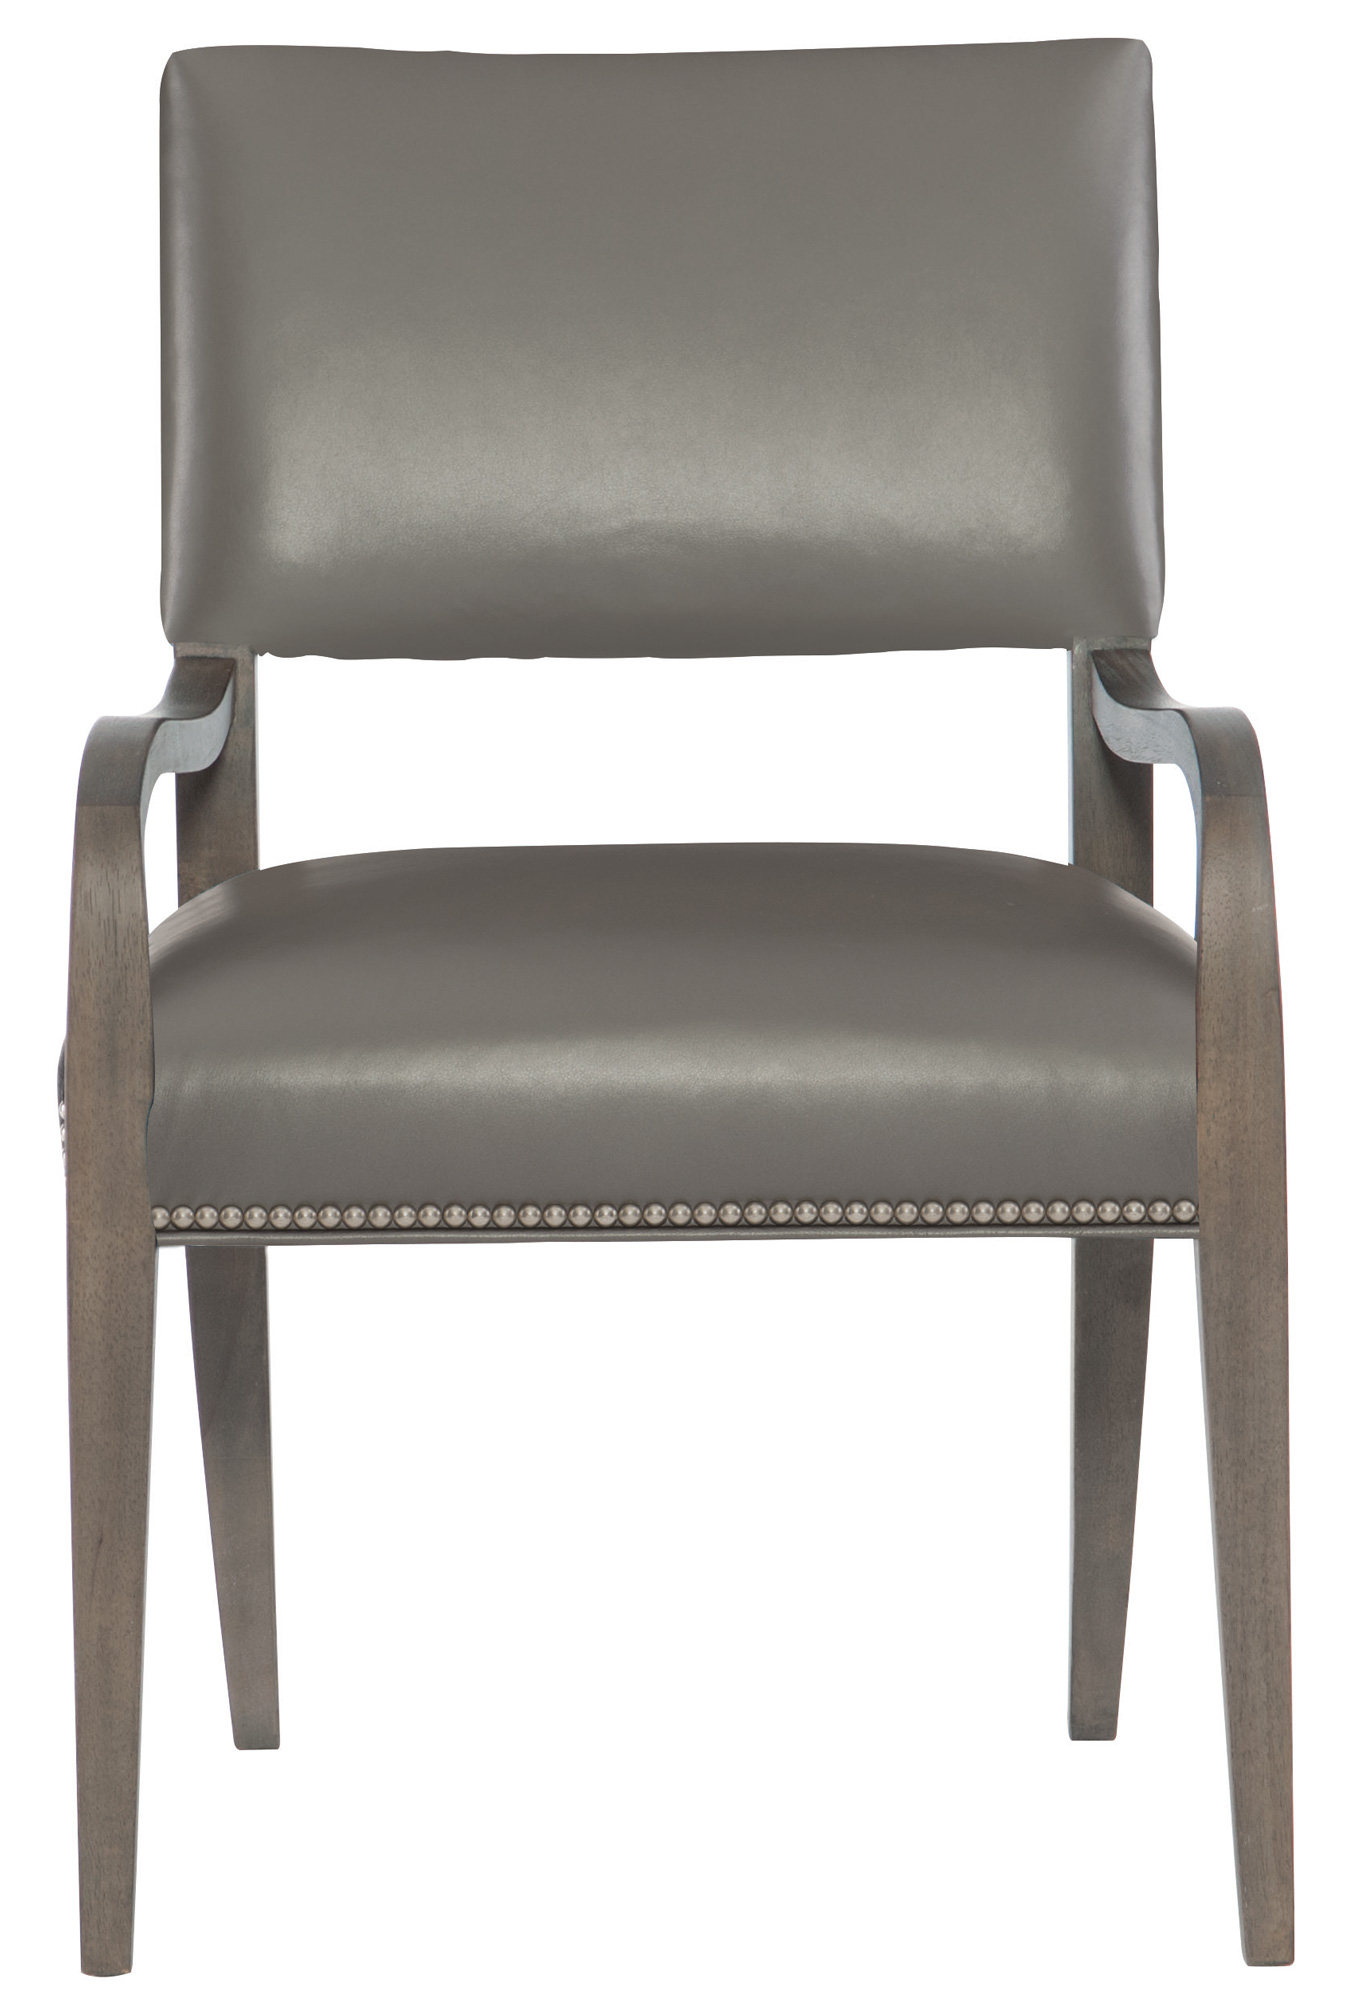 Bernhardt Leather Chair Leather Arm Chair Bernhardt